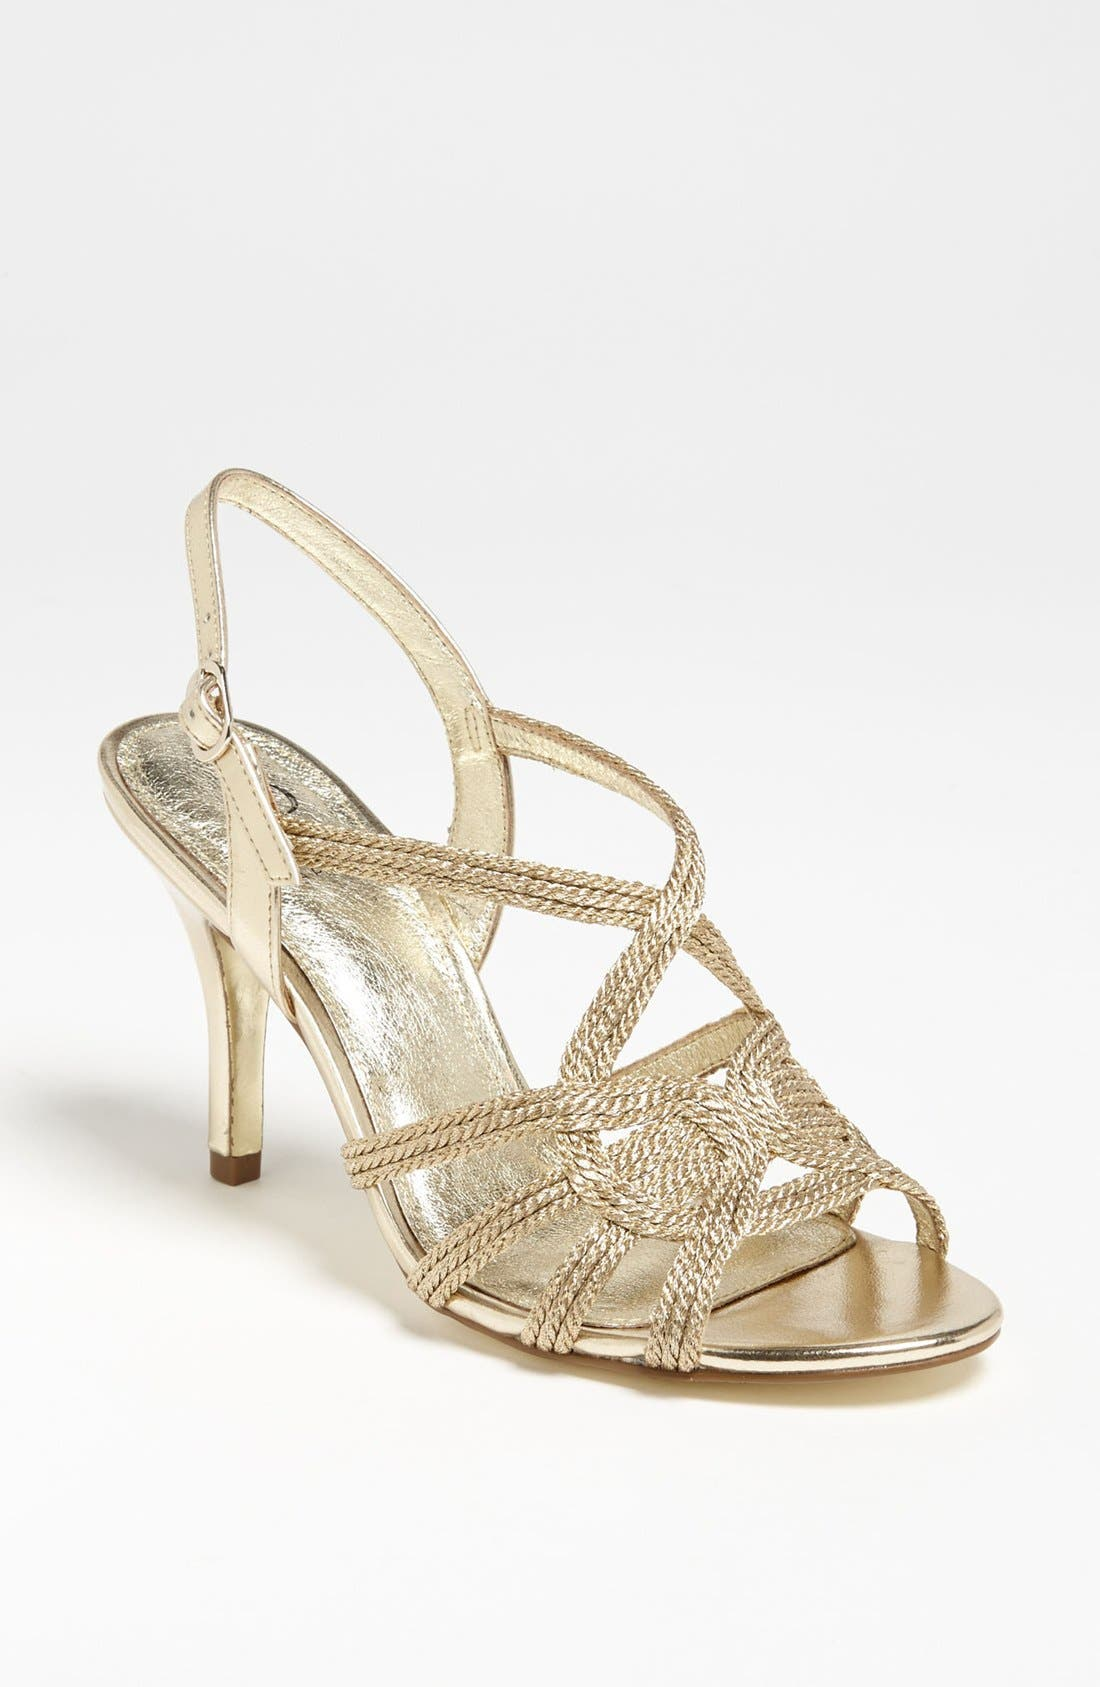 Alternate Image 1 Selected - Adrianna Papell 'Michele' Sandal